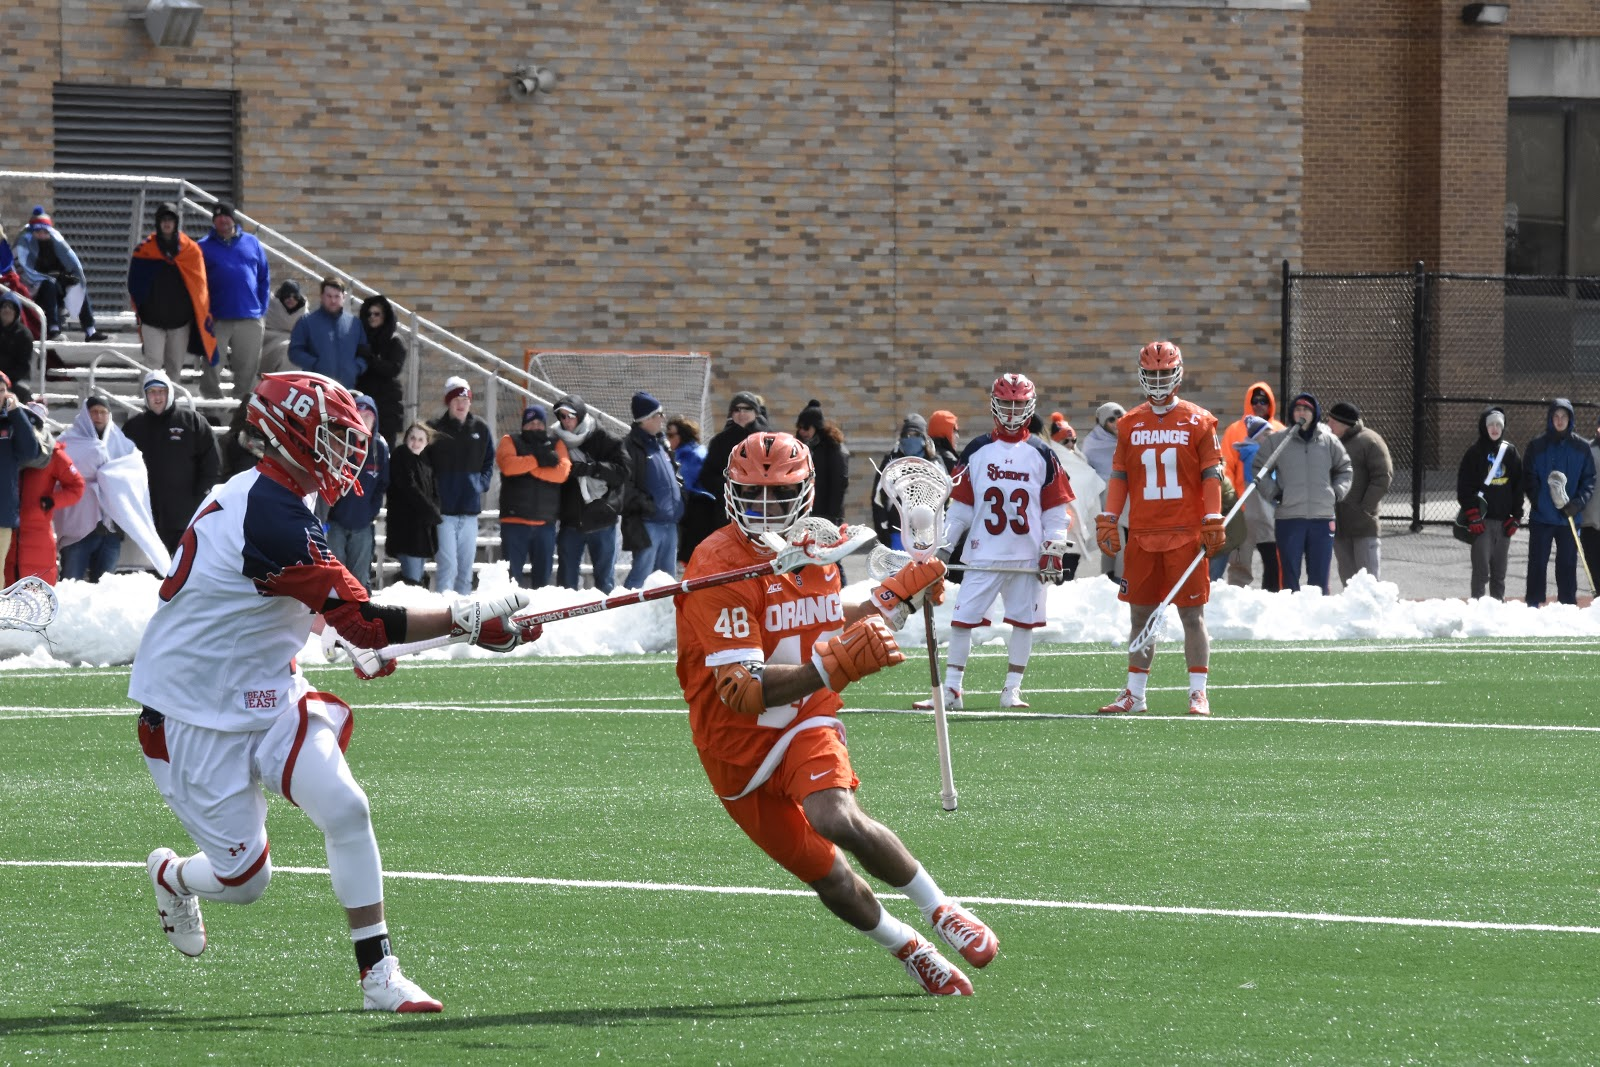 Another One-goal Game to Orange; Survival at St. John's